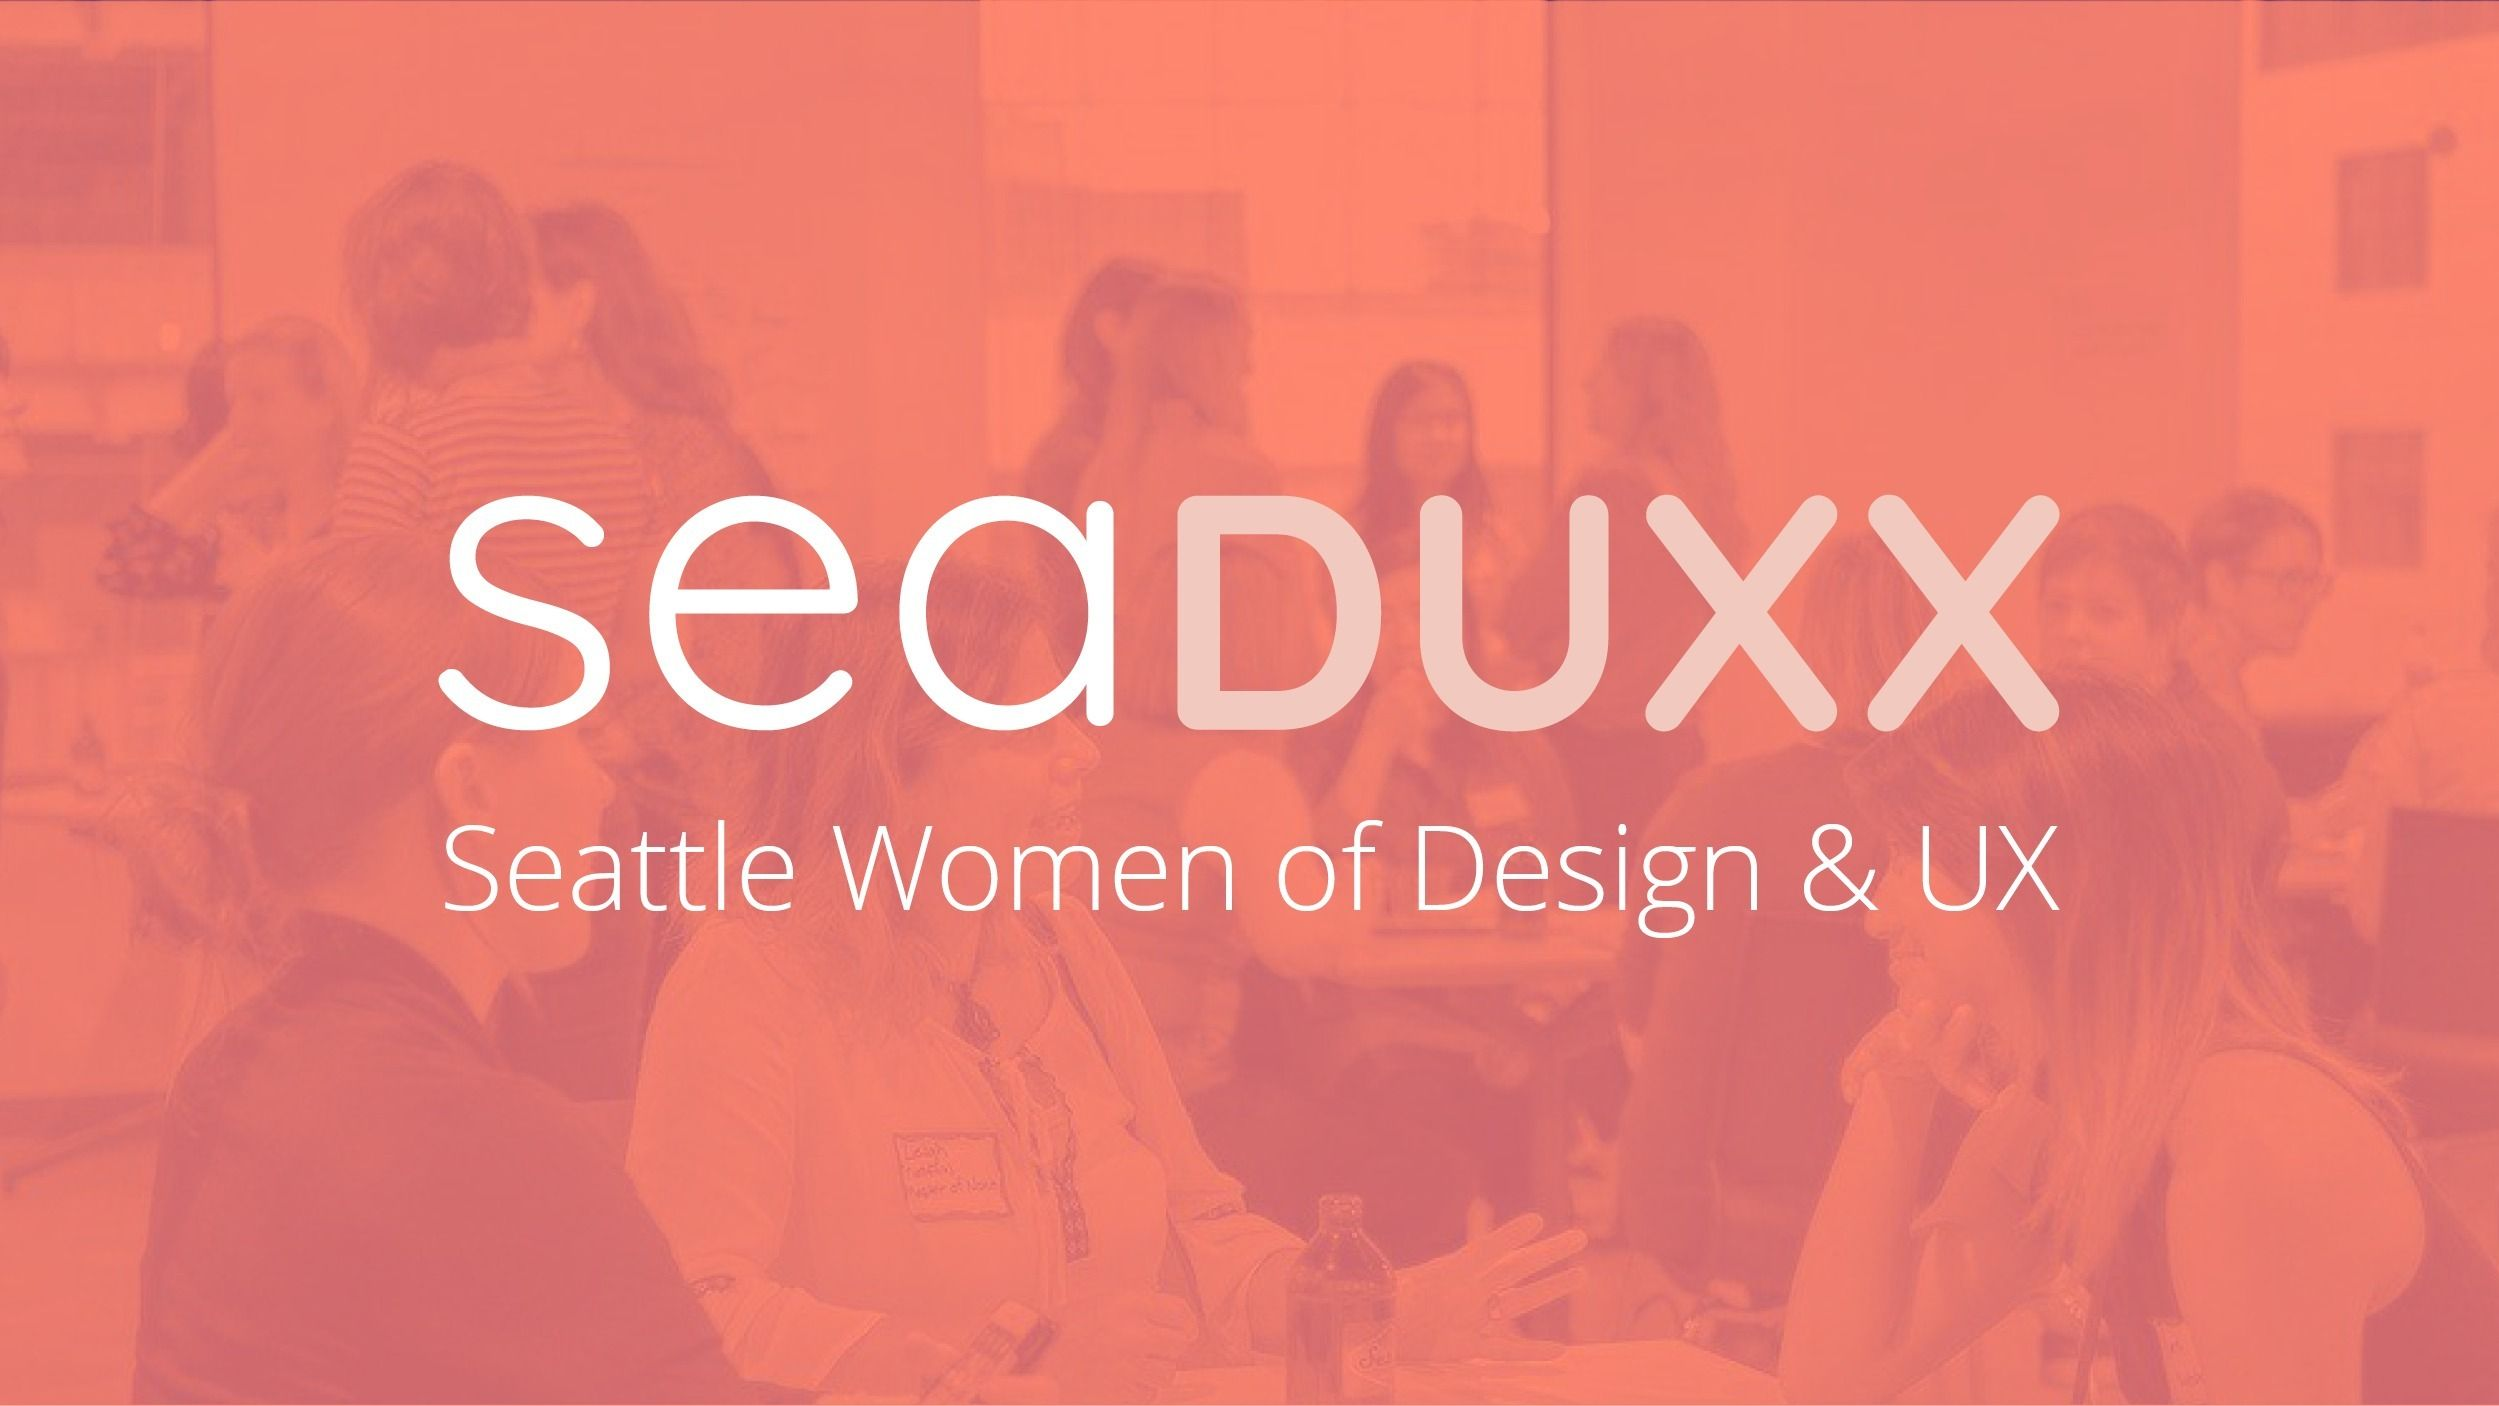 seaDUXX: Seattle Women of Design and UX